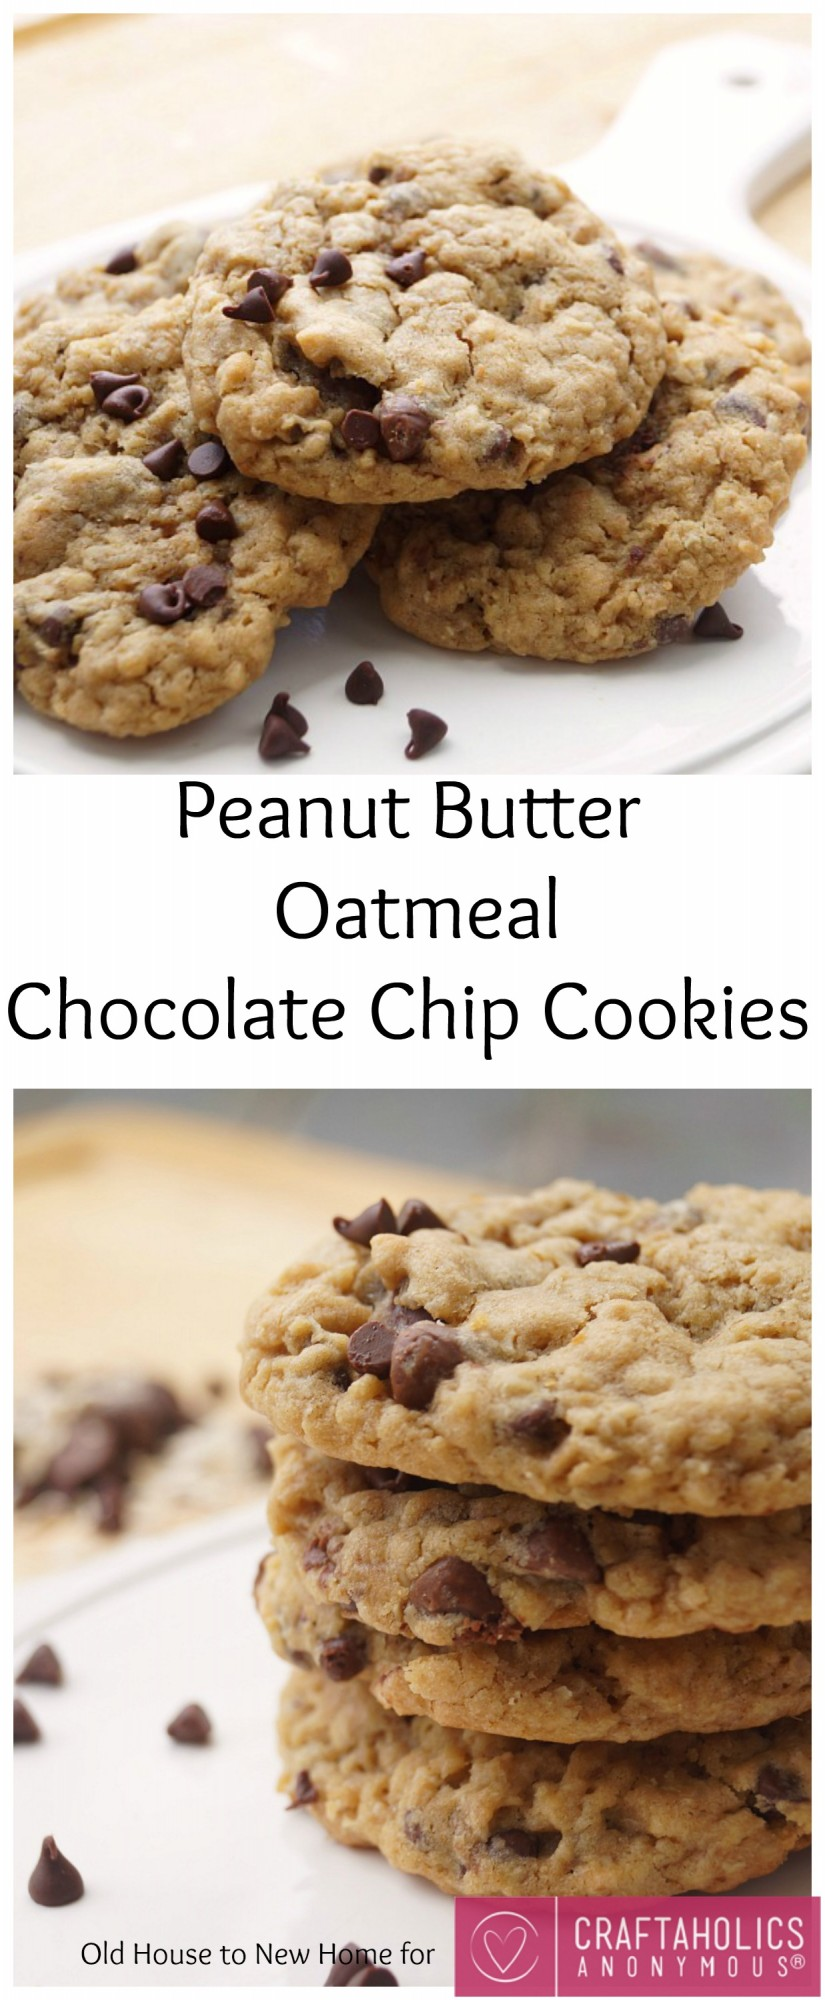 Soft and Chewy Peanut Butter Oatmeal Chocolate Chip Cookies